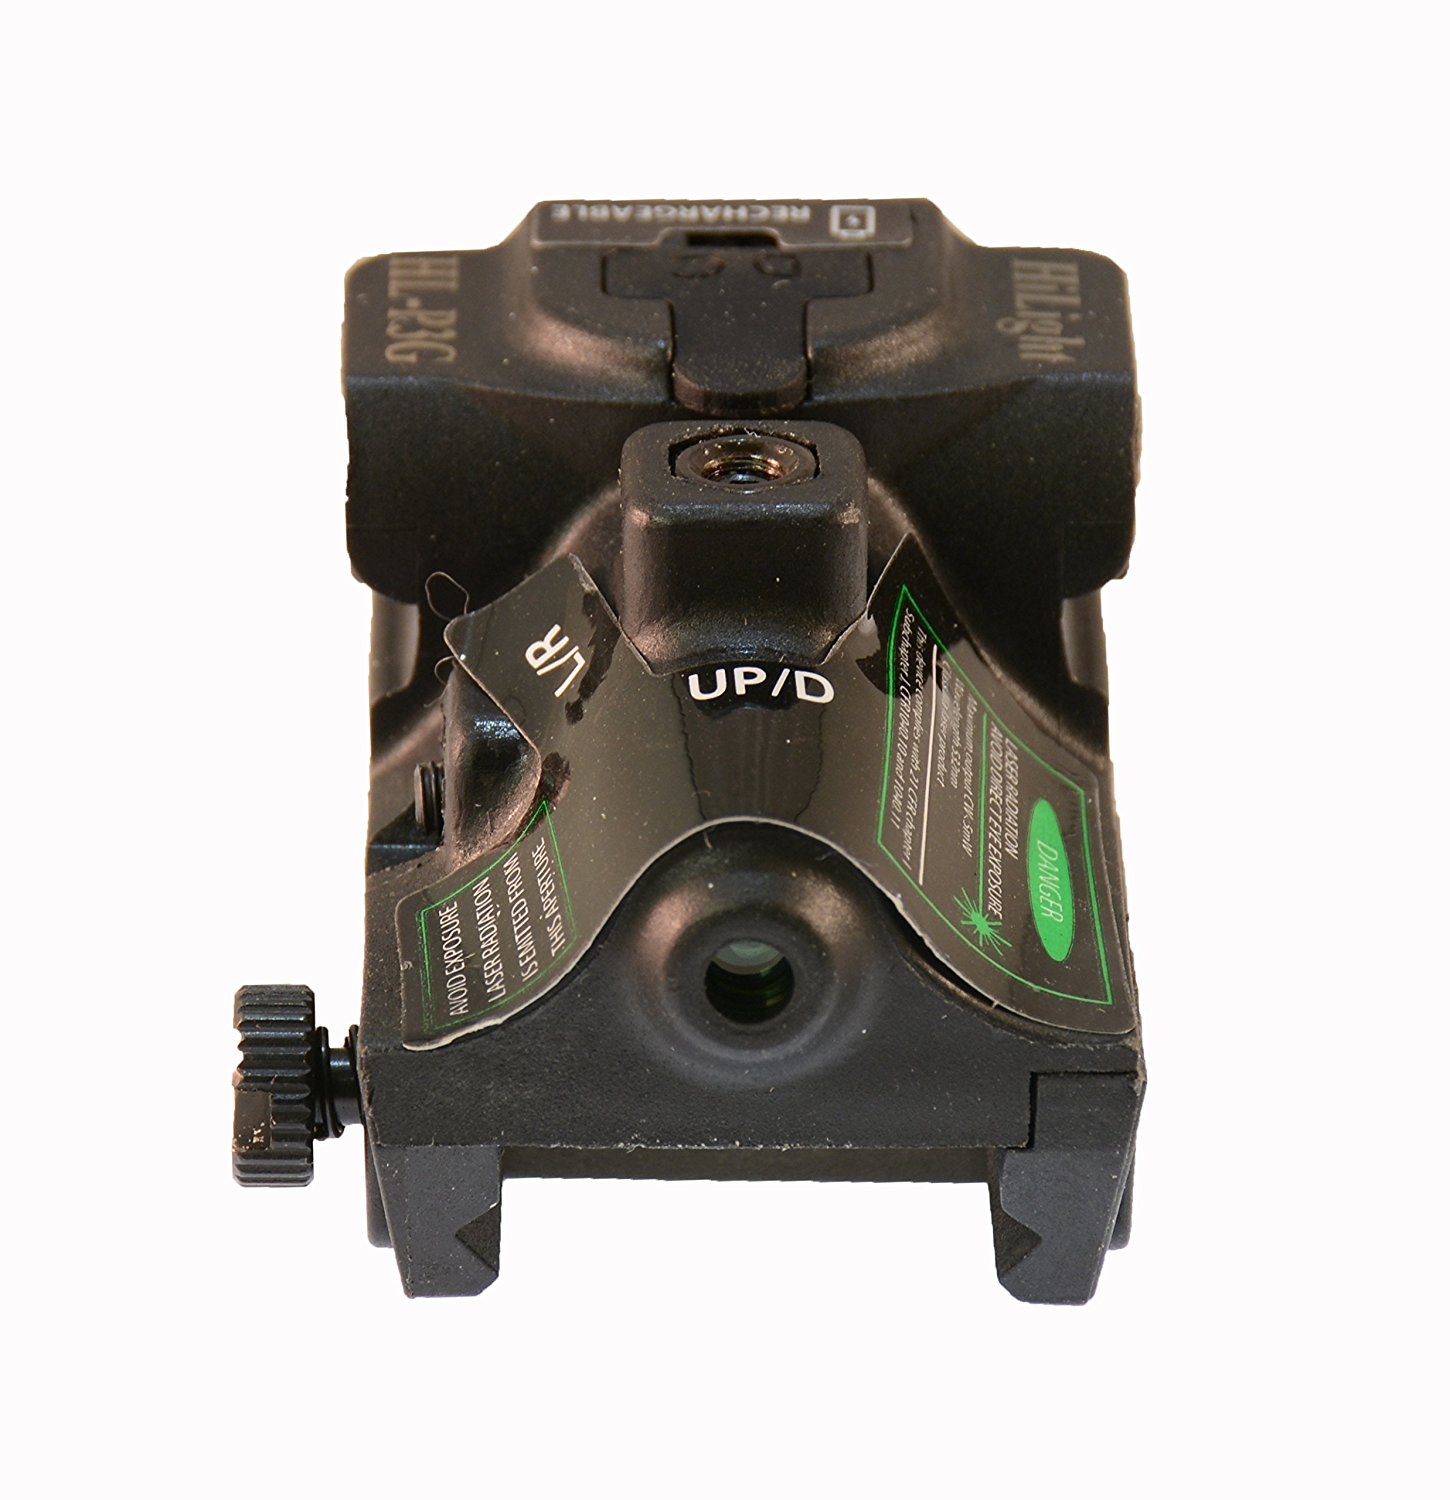 Pistol Green Laser Sight (USB RECHARGEABLE) Handgun Scope P3G by HiLight by